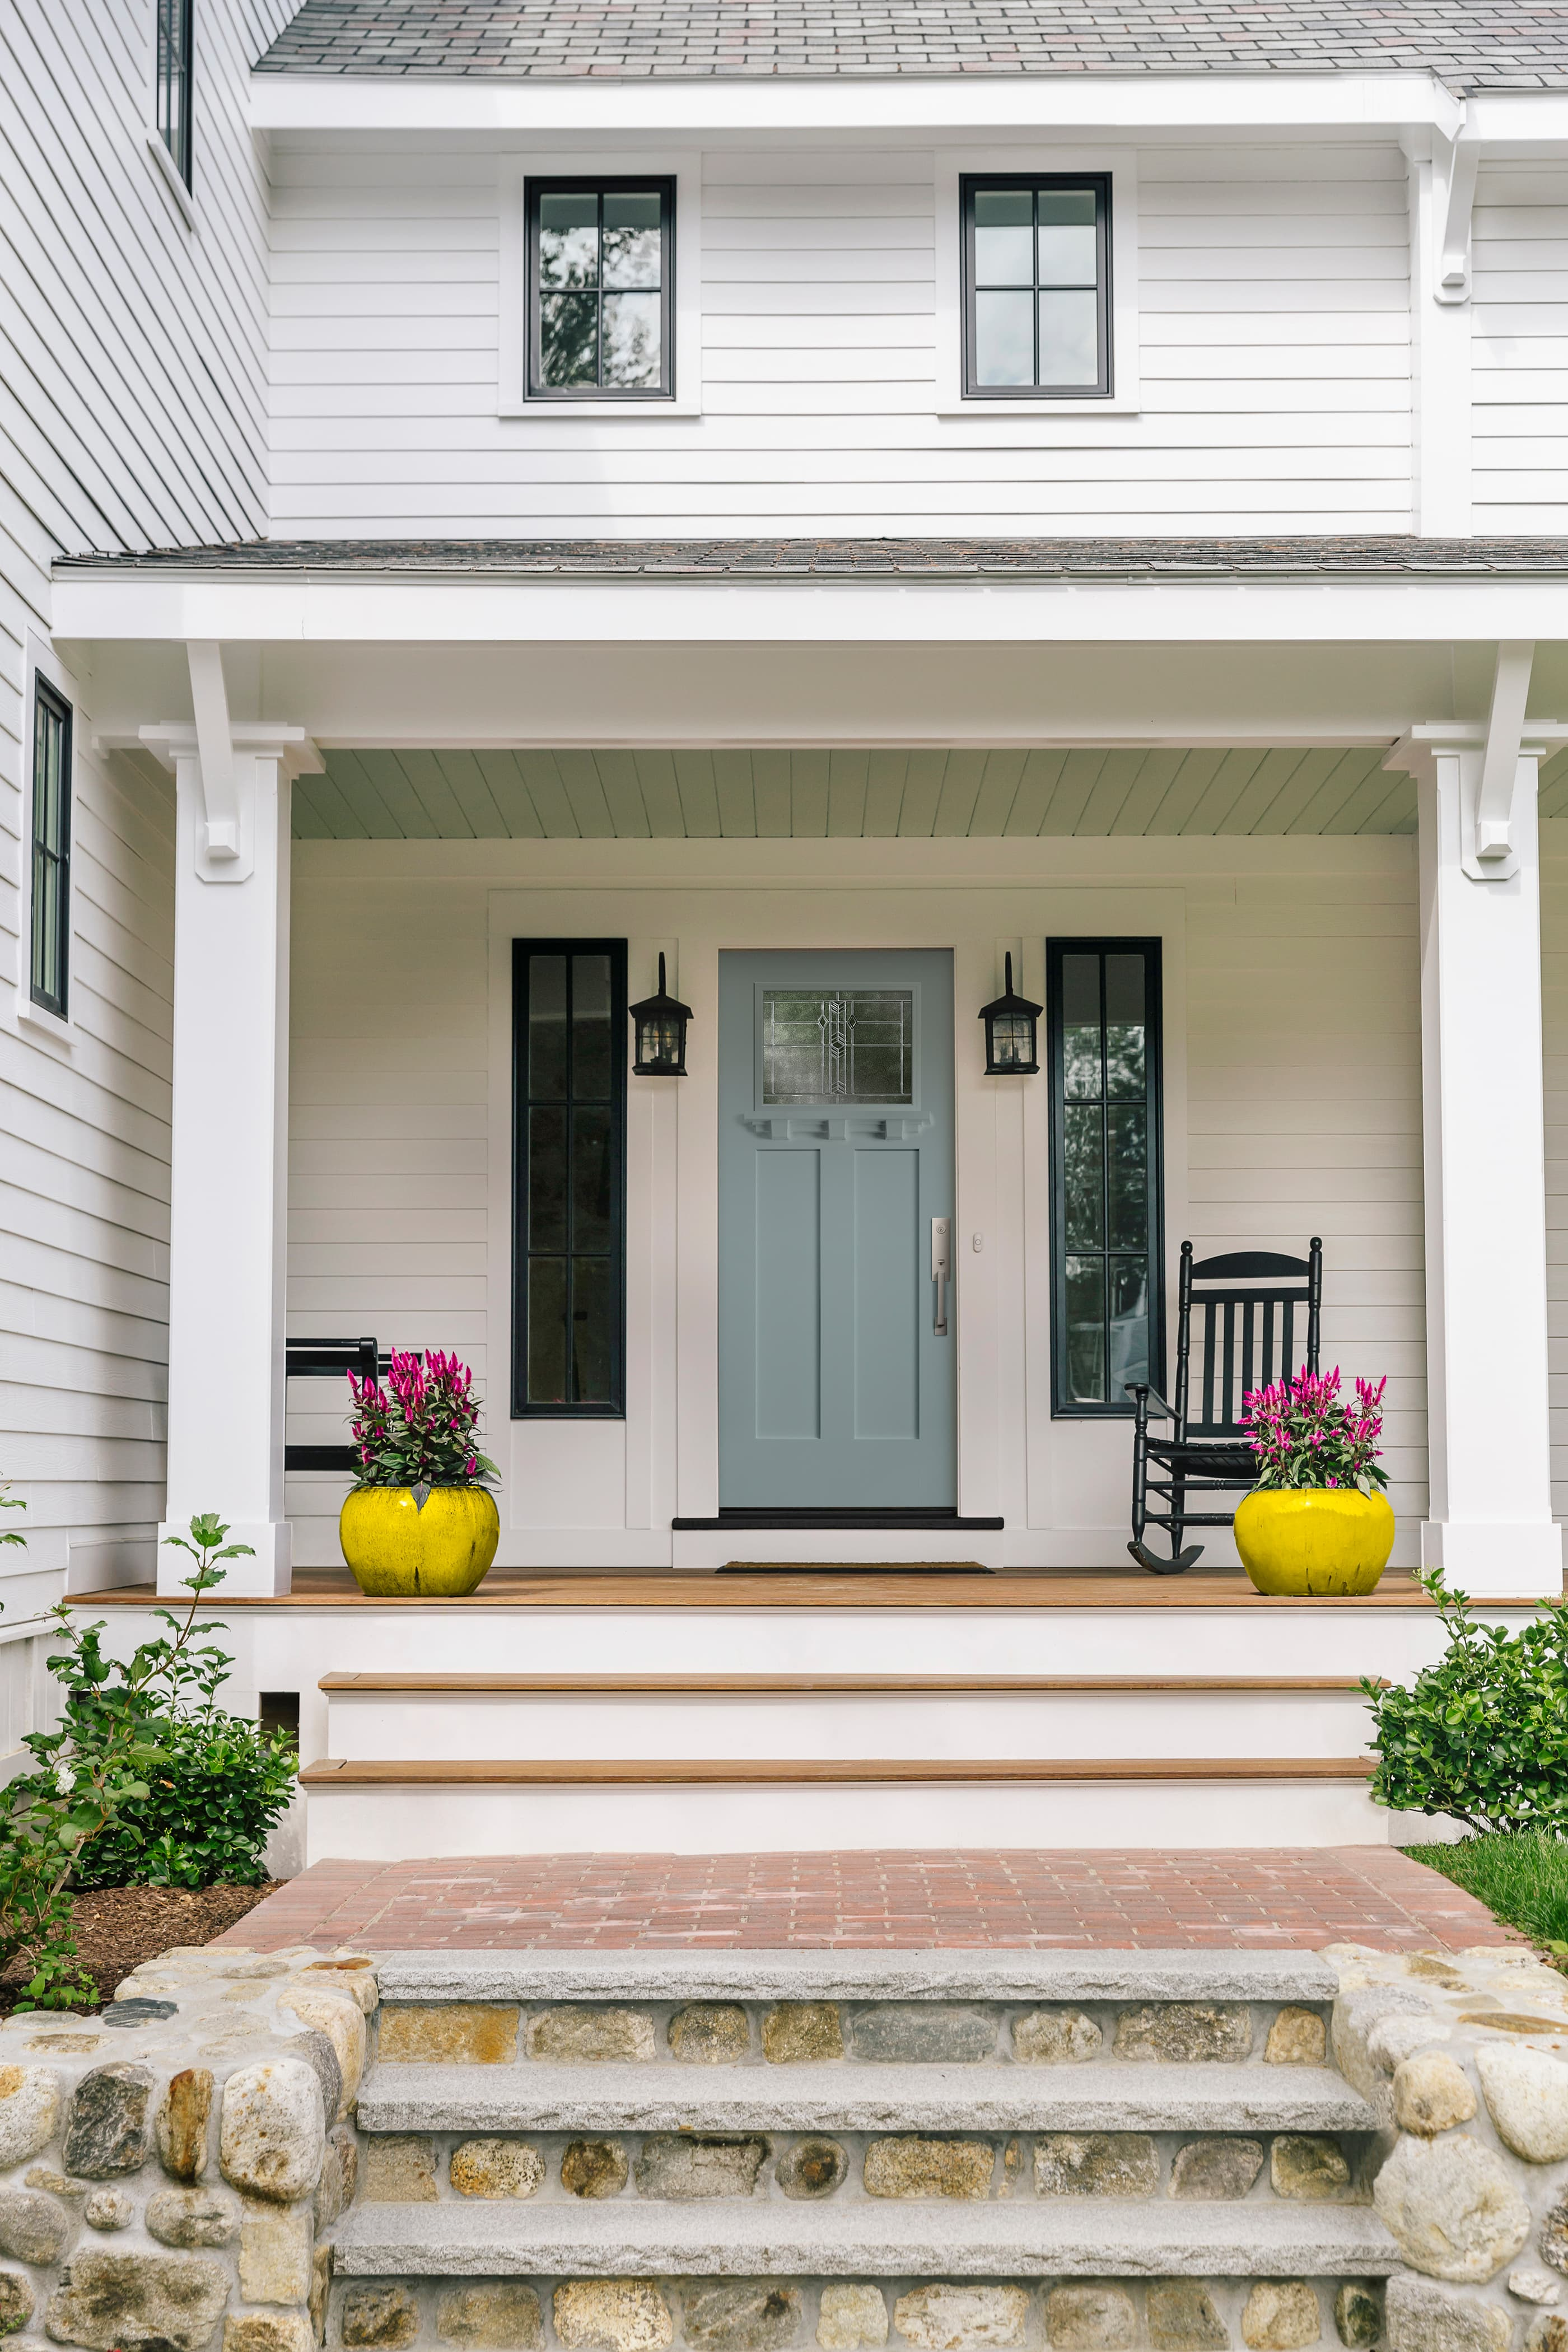 Blue craftsman front door with decorative glass and modern hardware surrounded by black windows on white house